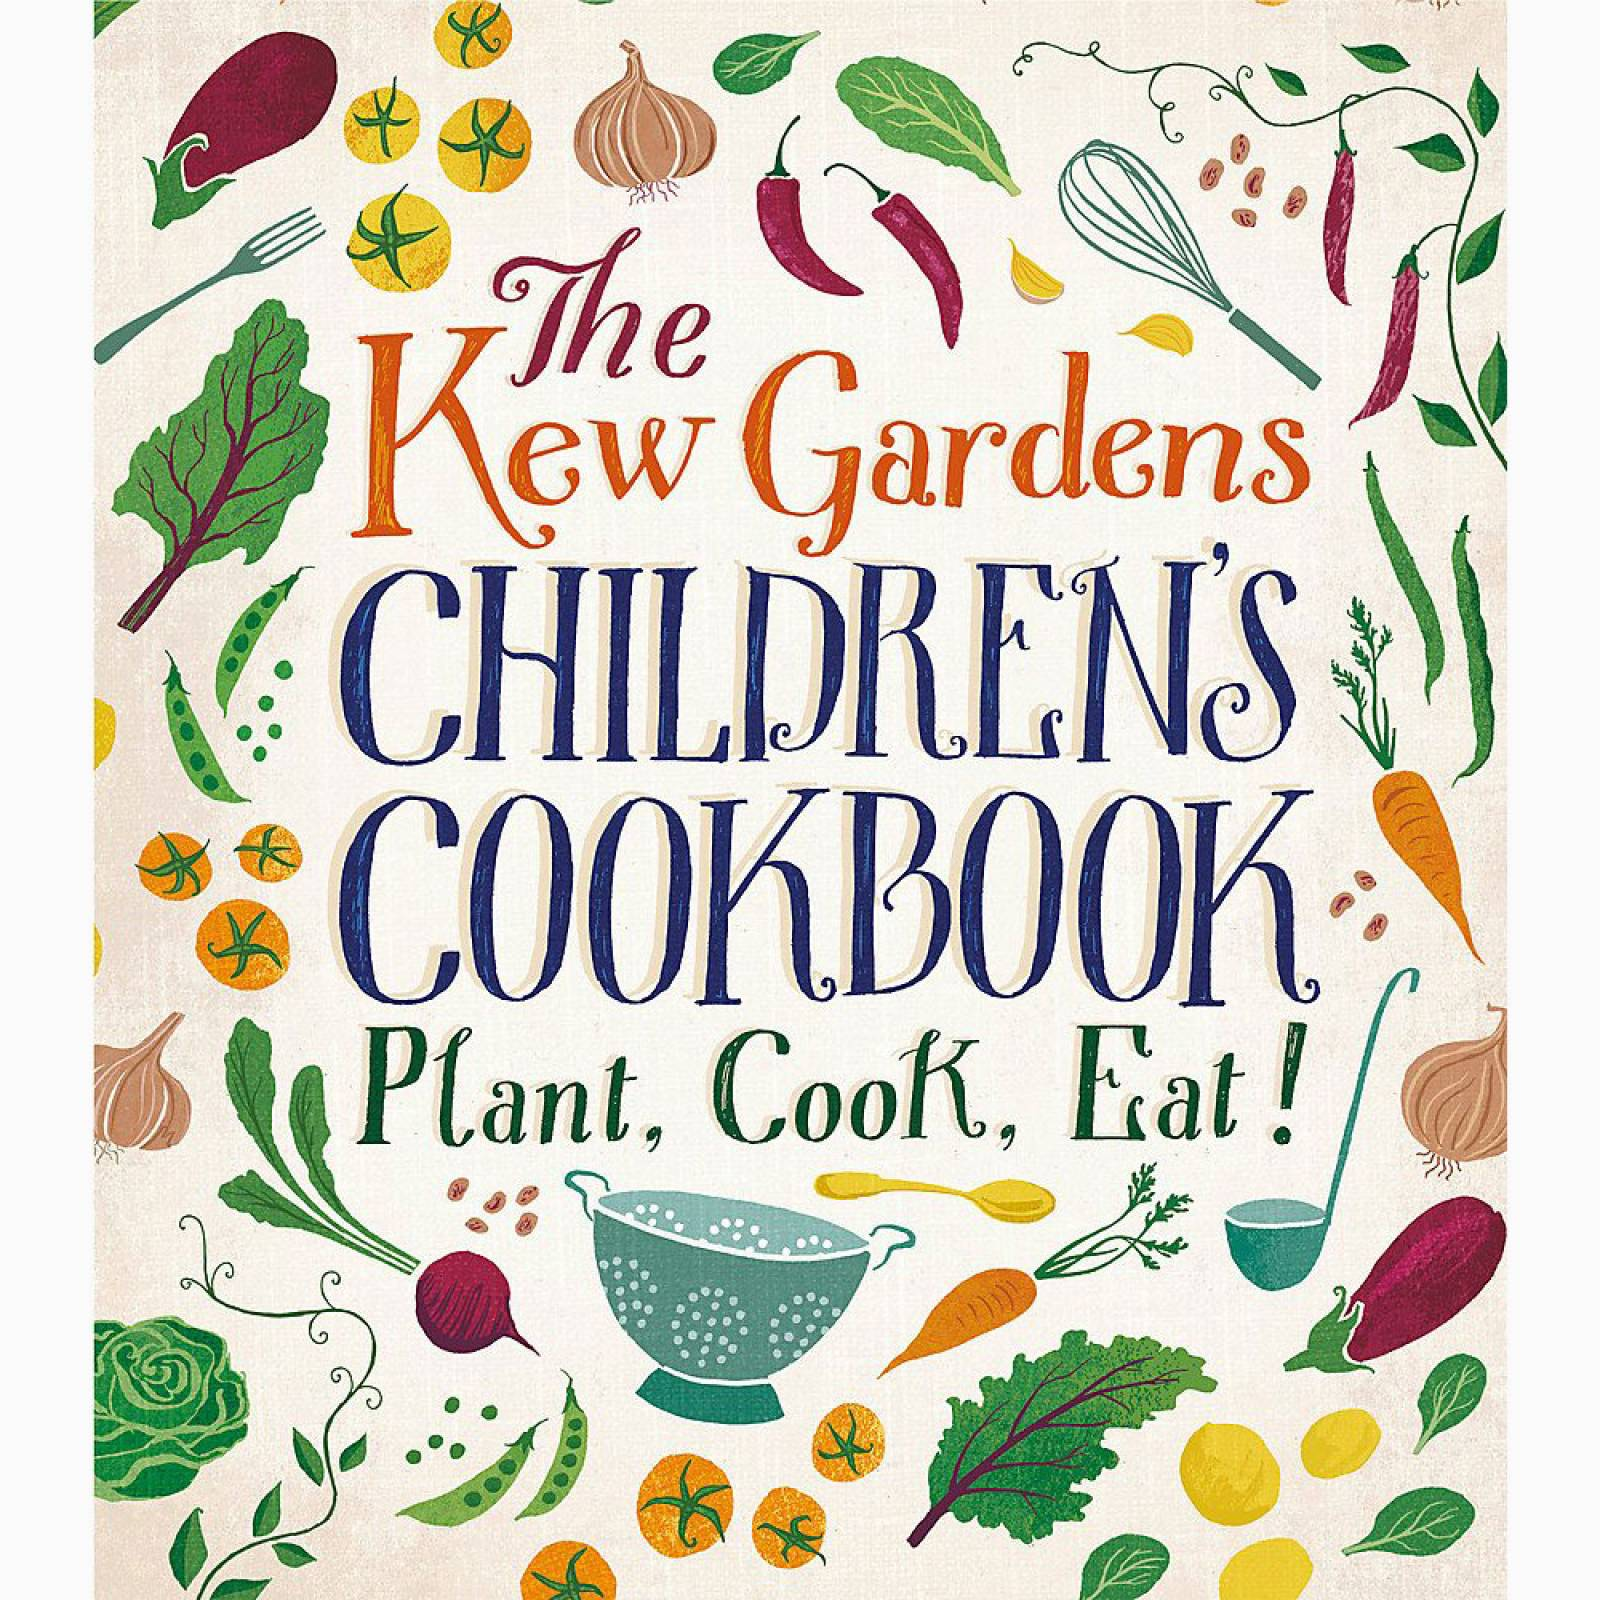 Kew Gardens Children's Cookbook thumbnails